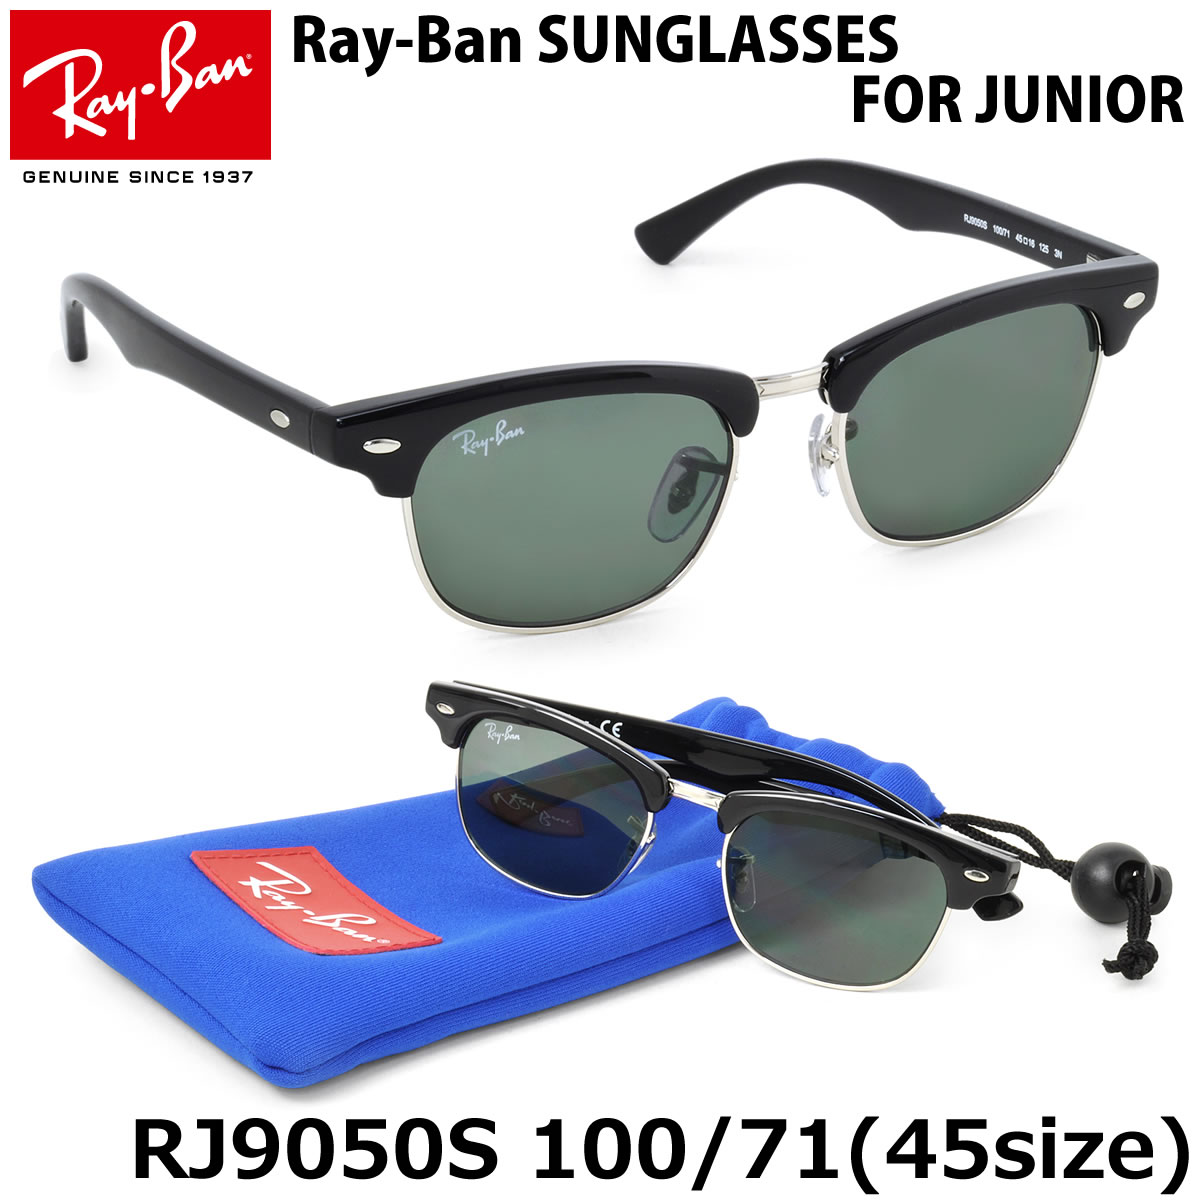 8ee7120763f If I wear matching Ray-Ban sunglasses in parent and child and go out